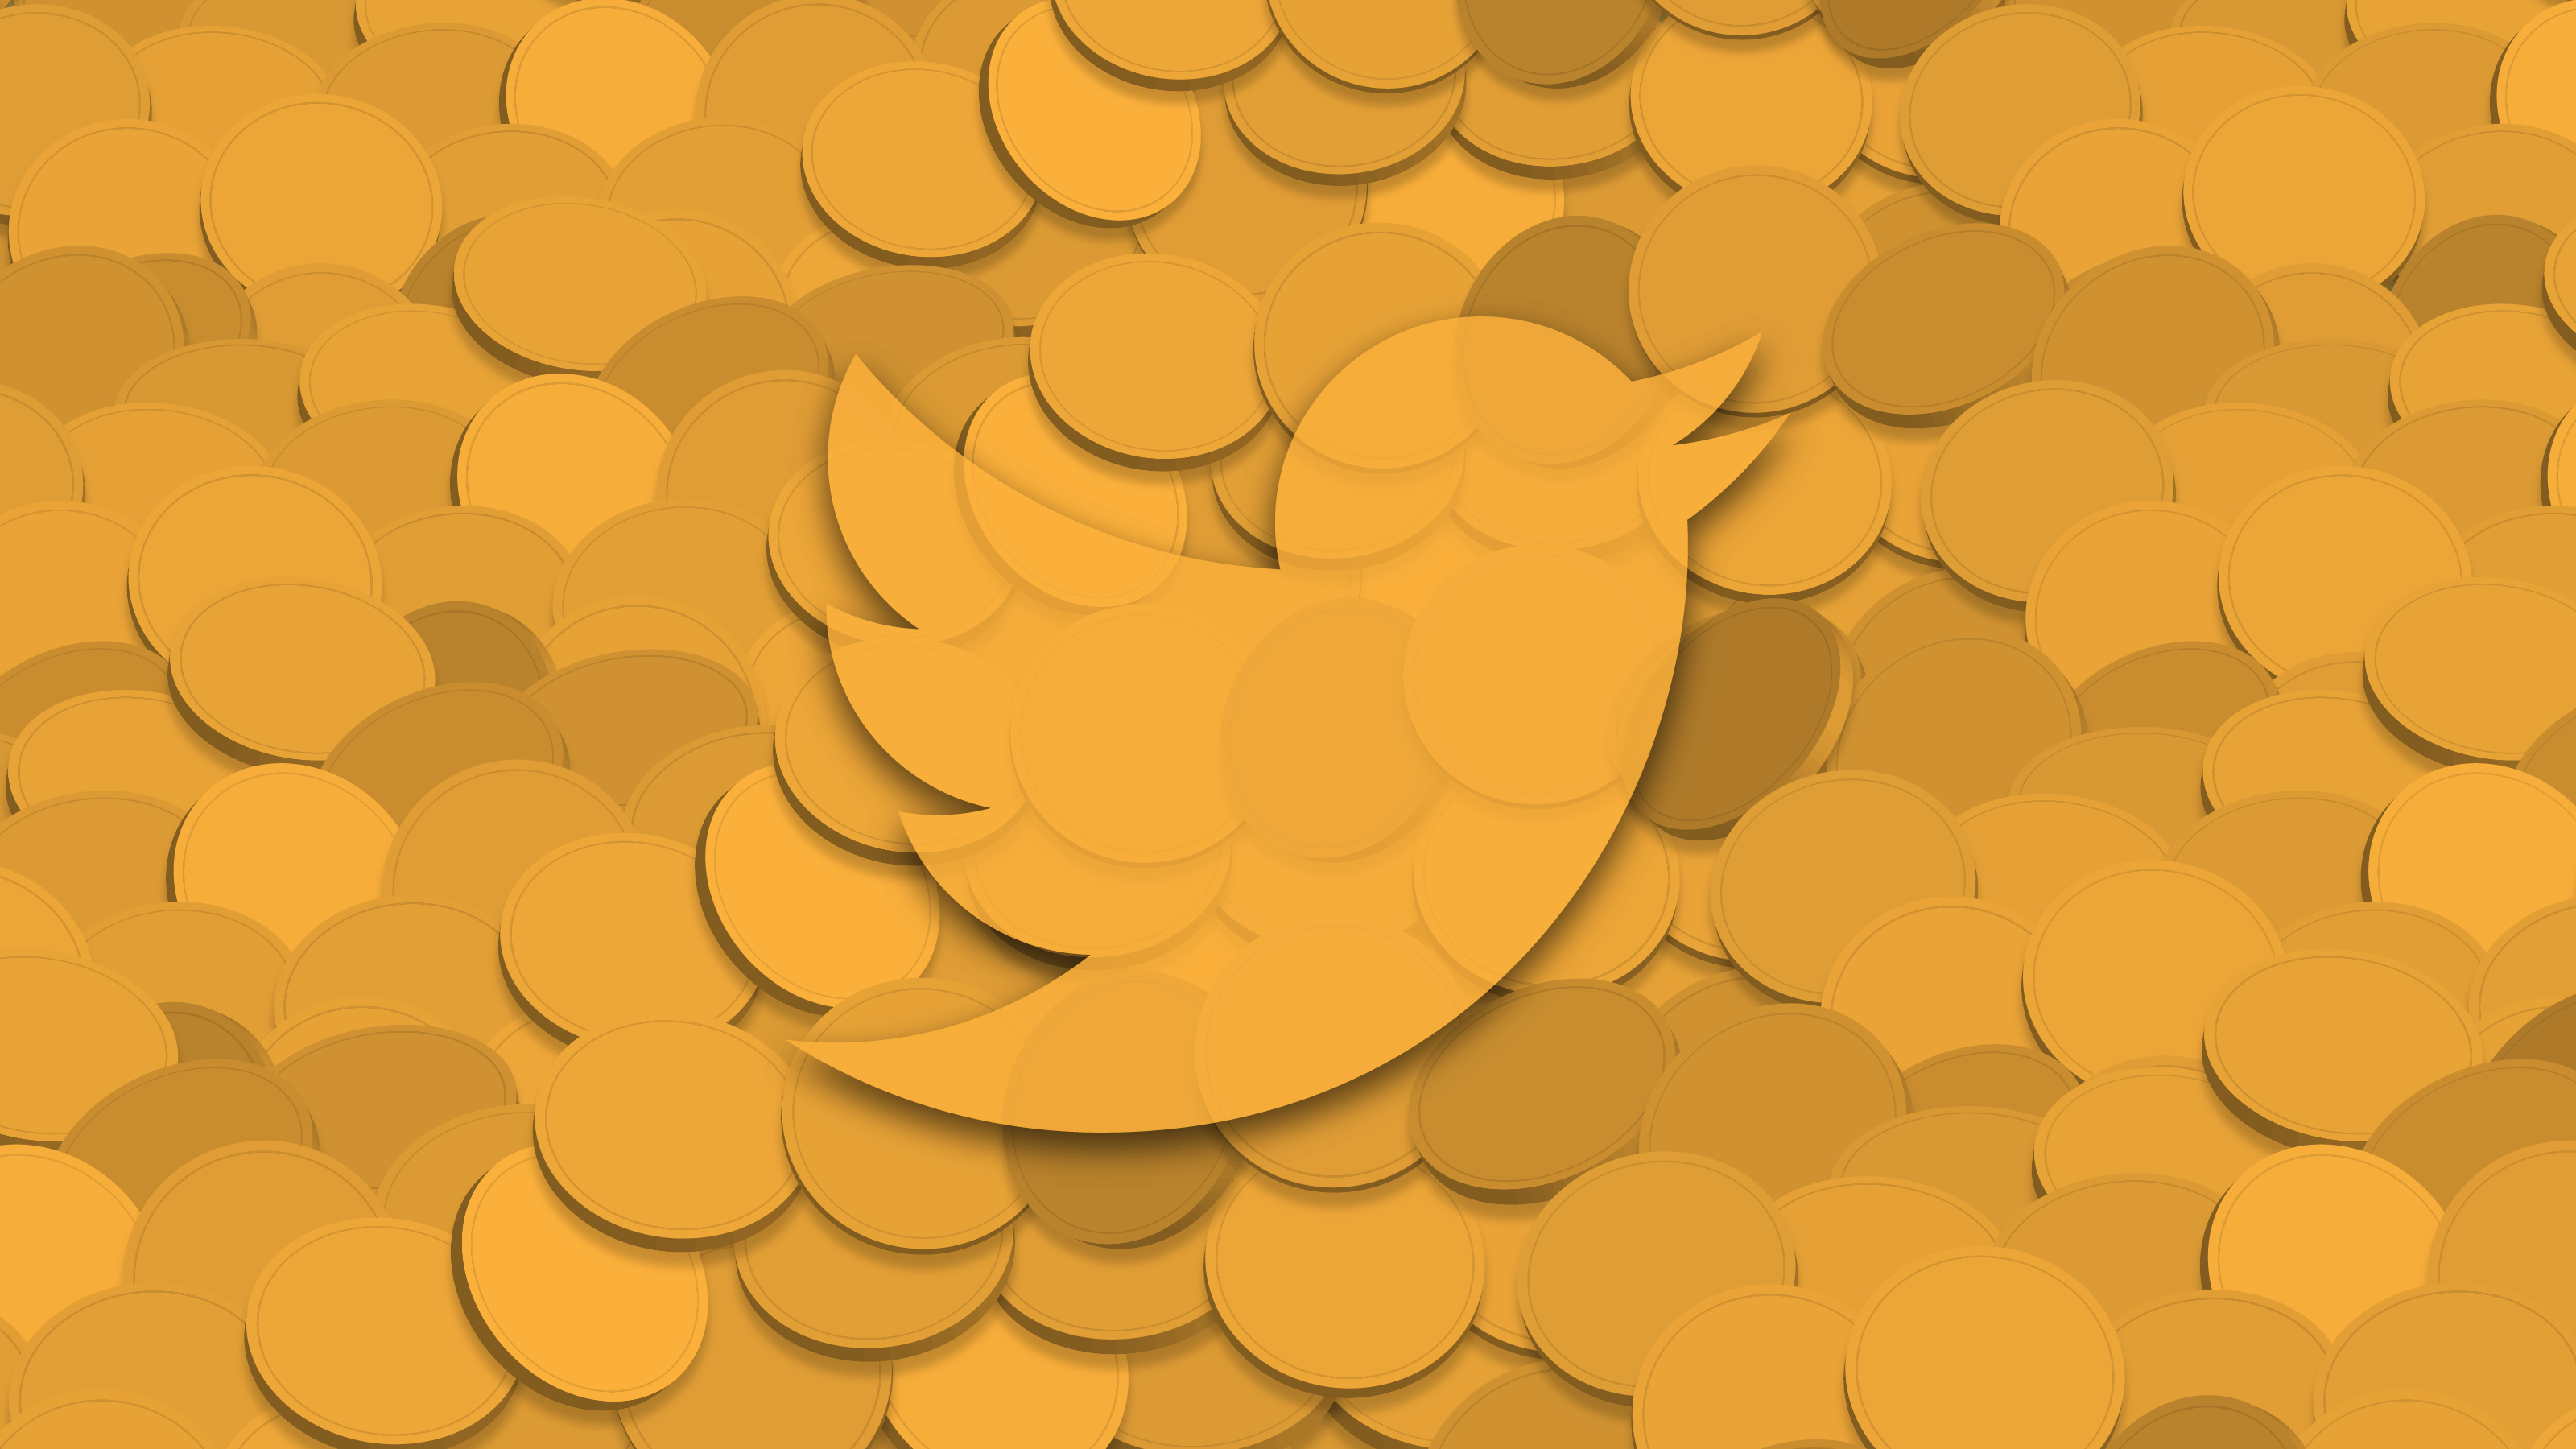 Twitter to ban cryptocurrency adverts on its platform